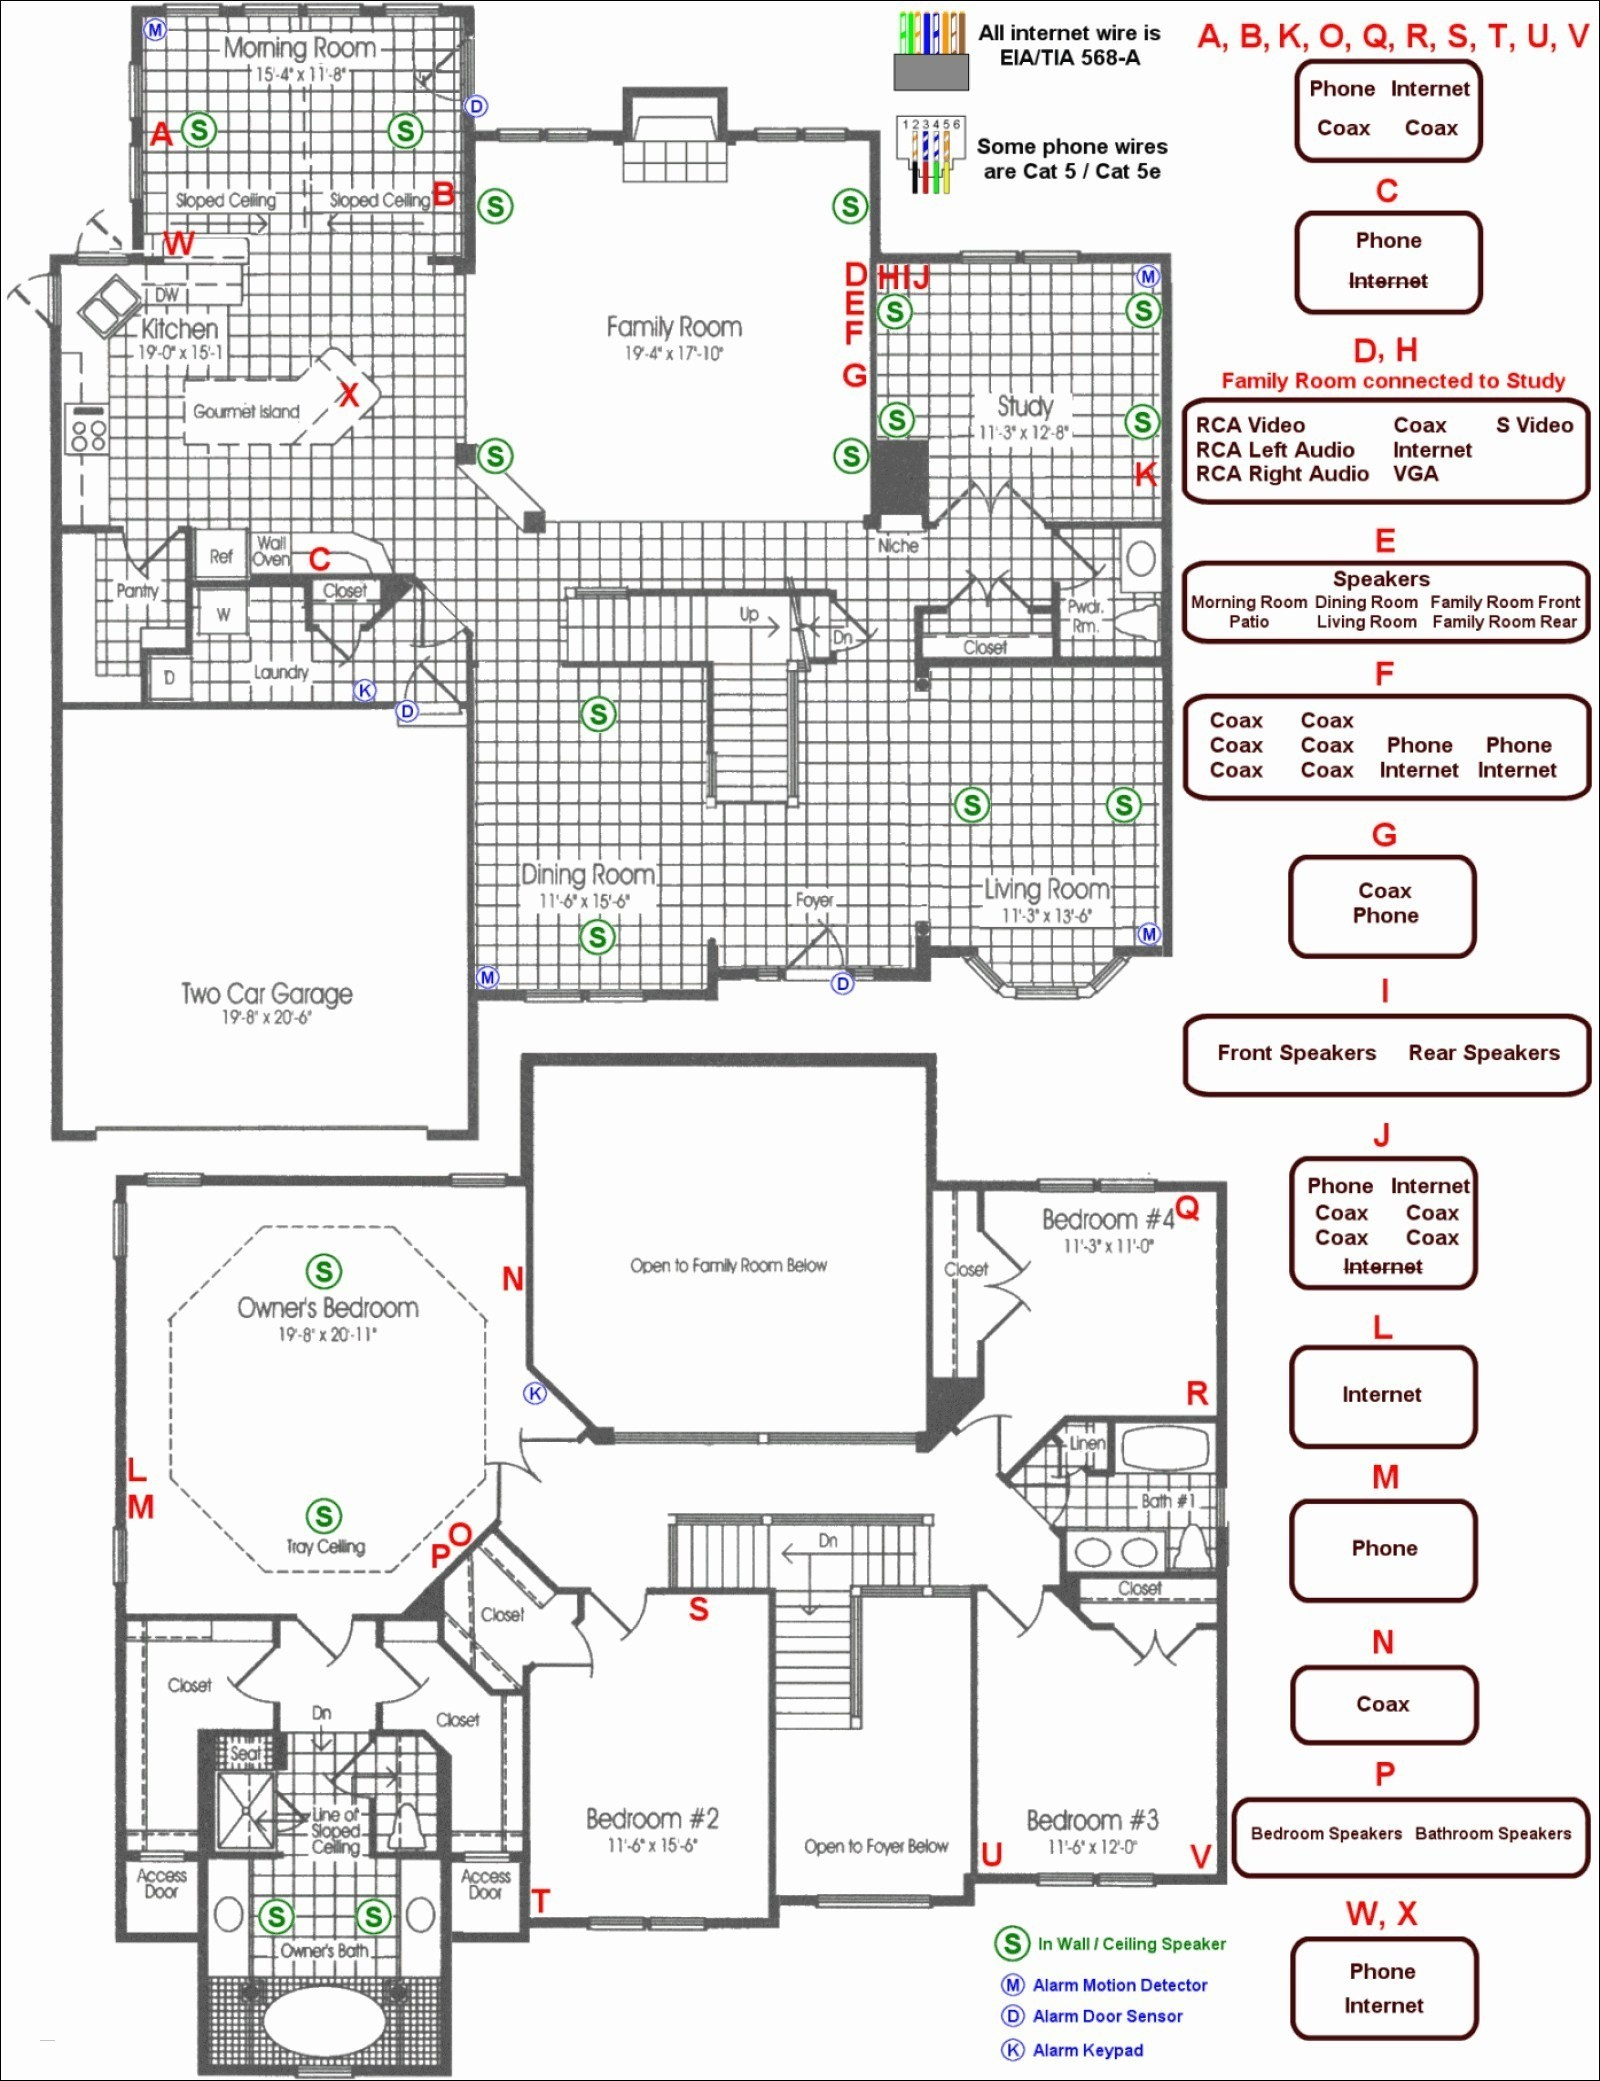 electrical house wiring diagram software Download-House Wiring Plan Drawing Awesome Electrical Wiring Diagram Symbols Sample 13-s